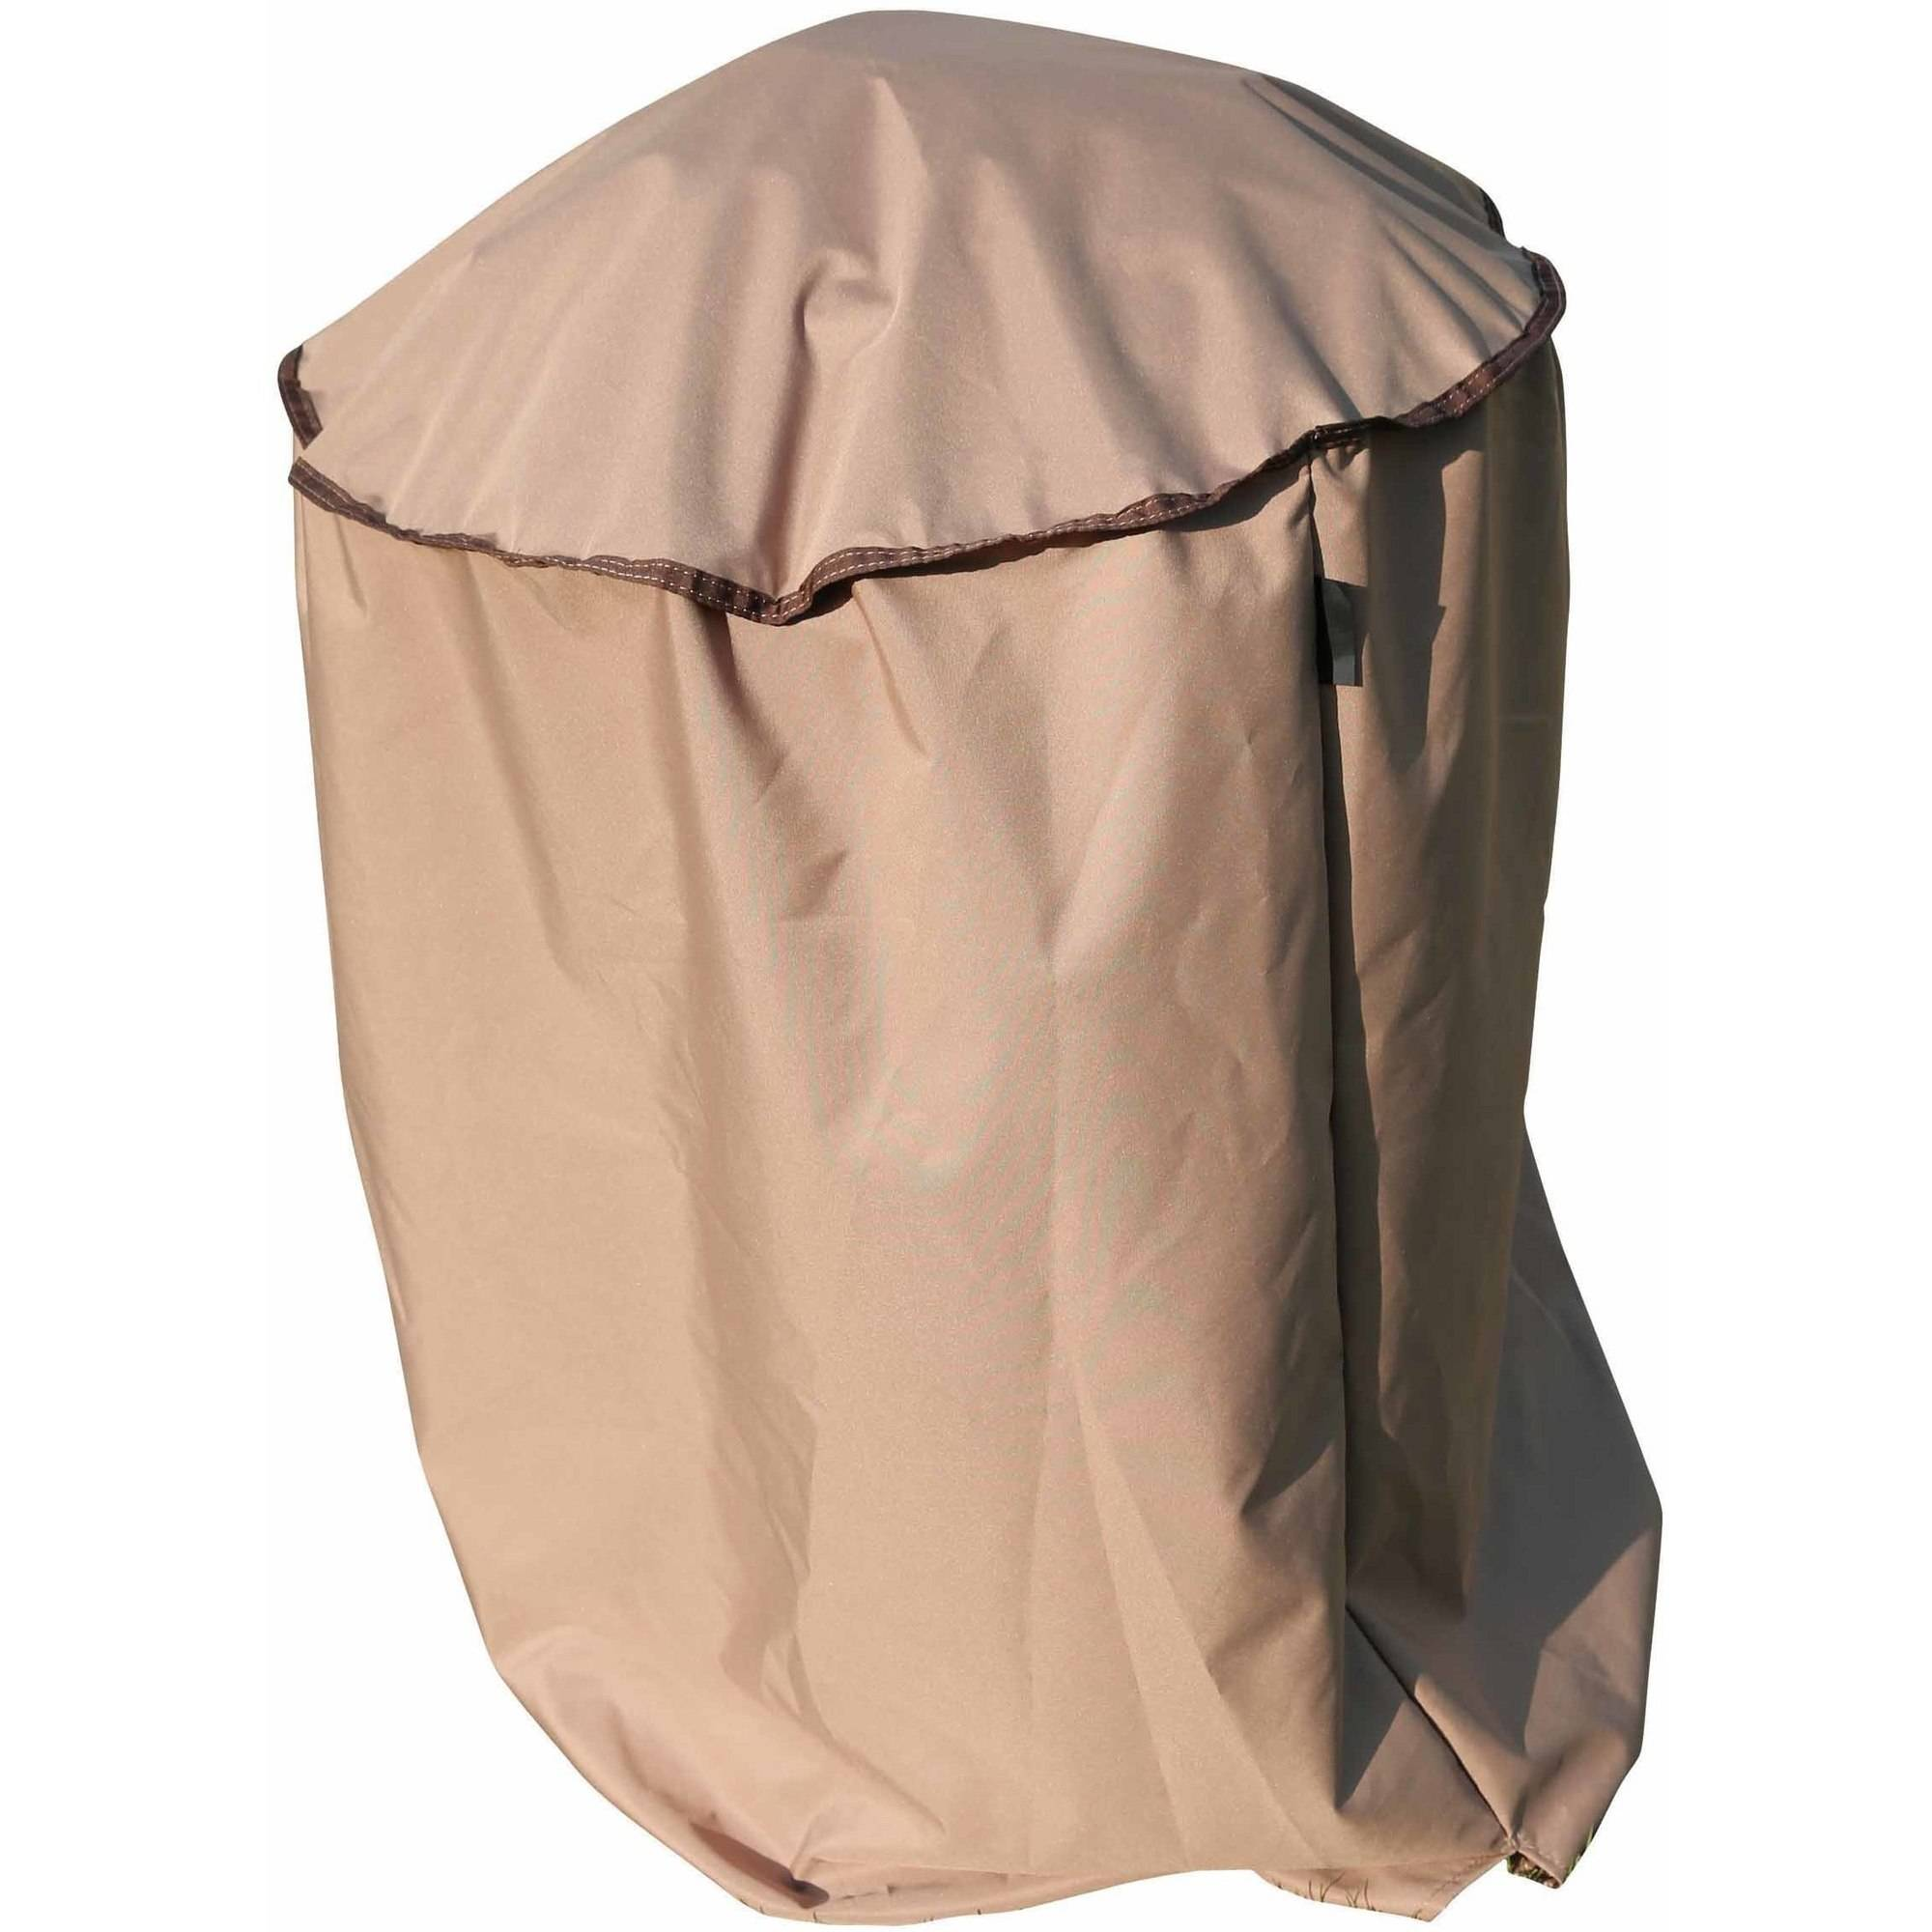 TrueShade Plus Kettle-Style BBQ Grill Cover, Large